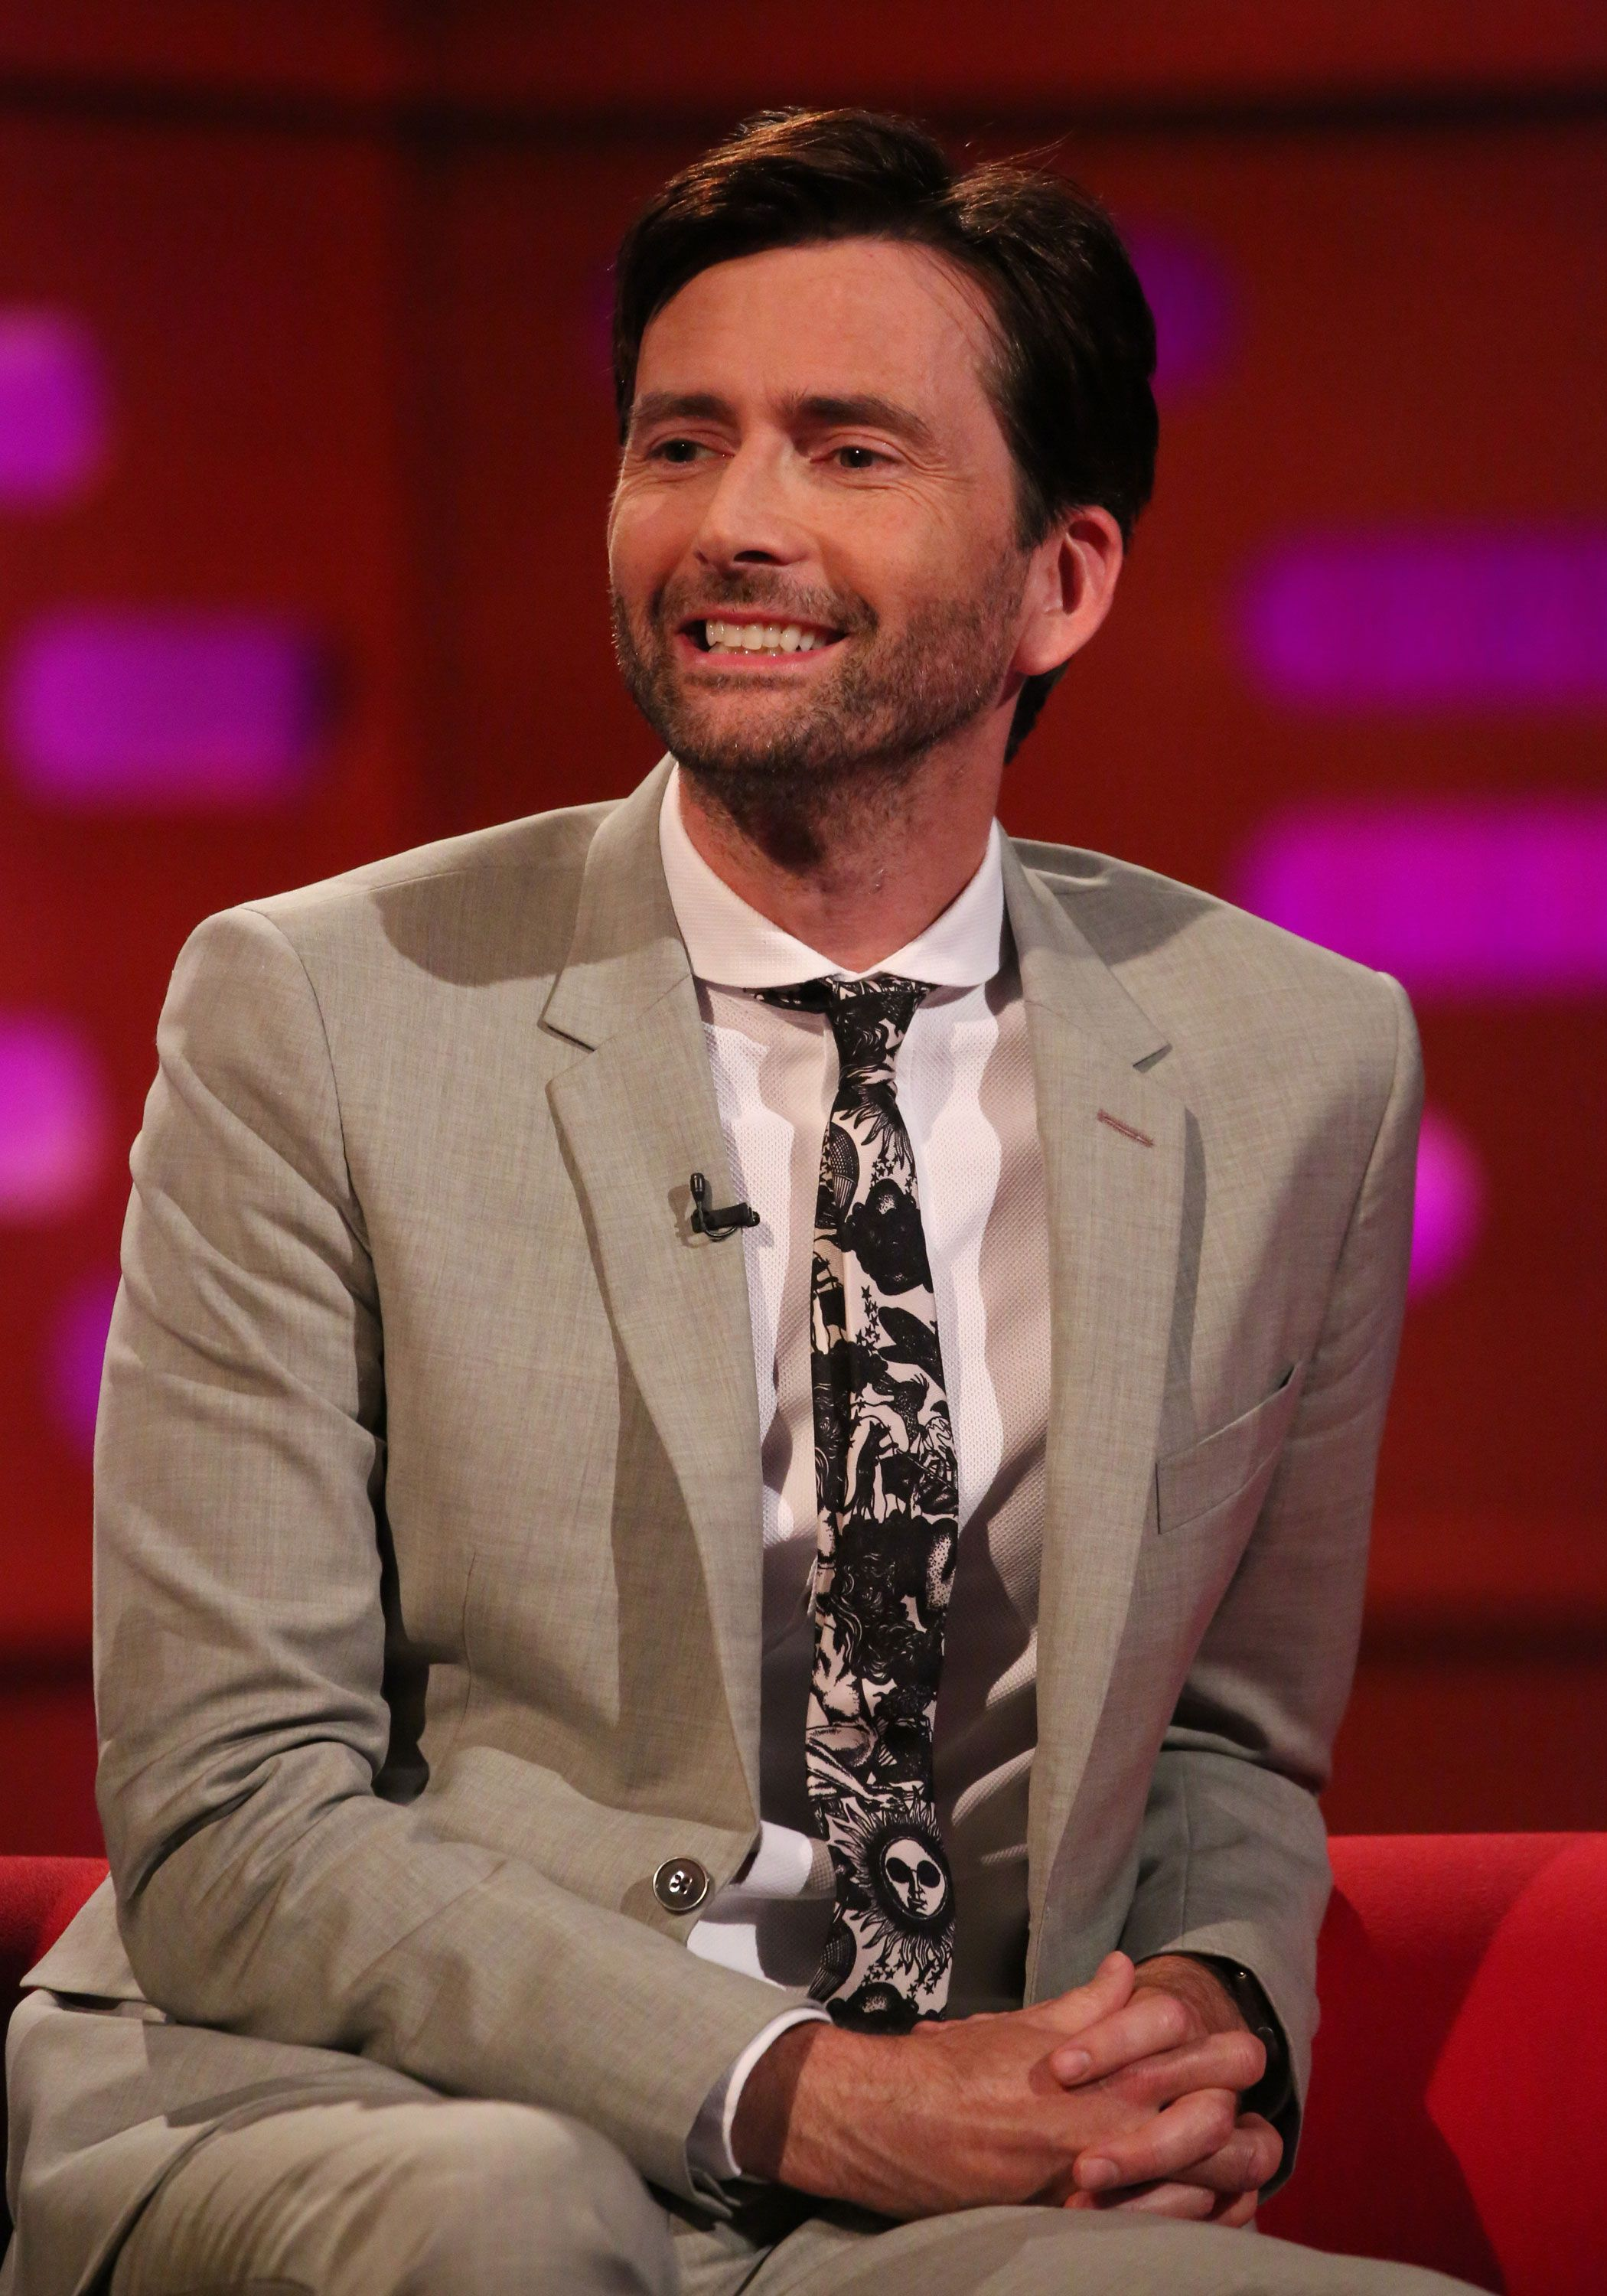 David Tennant to star in European adaptation of Around the World in 80 Days